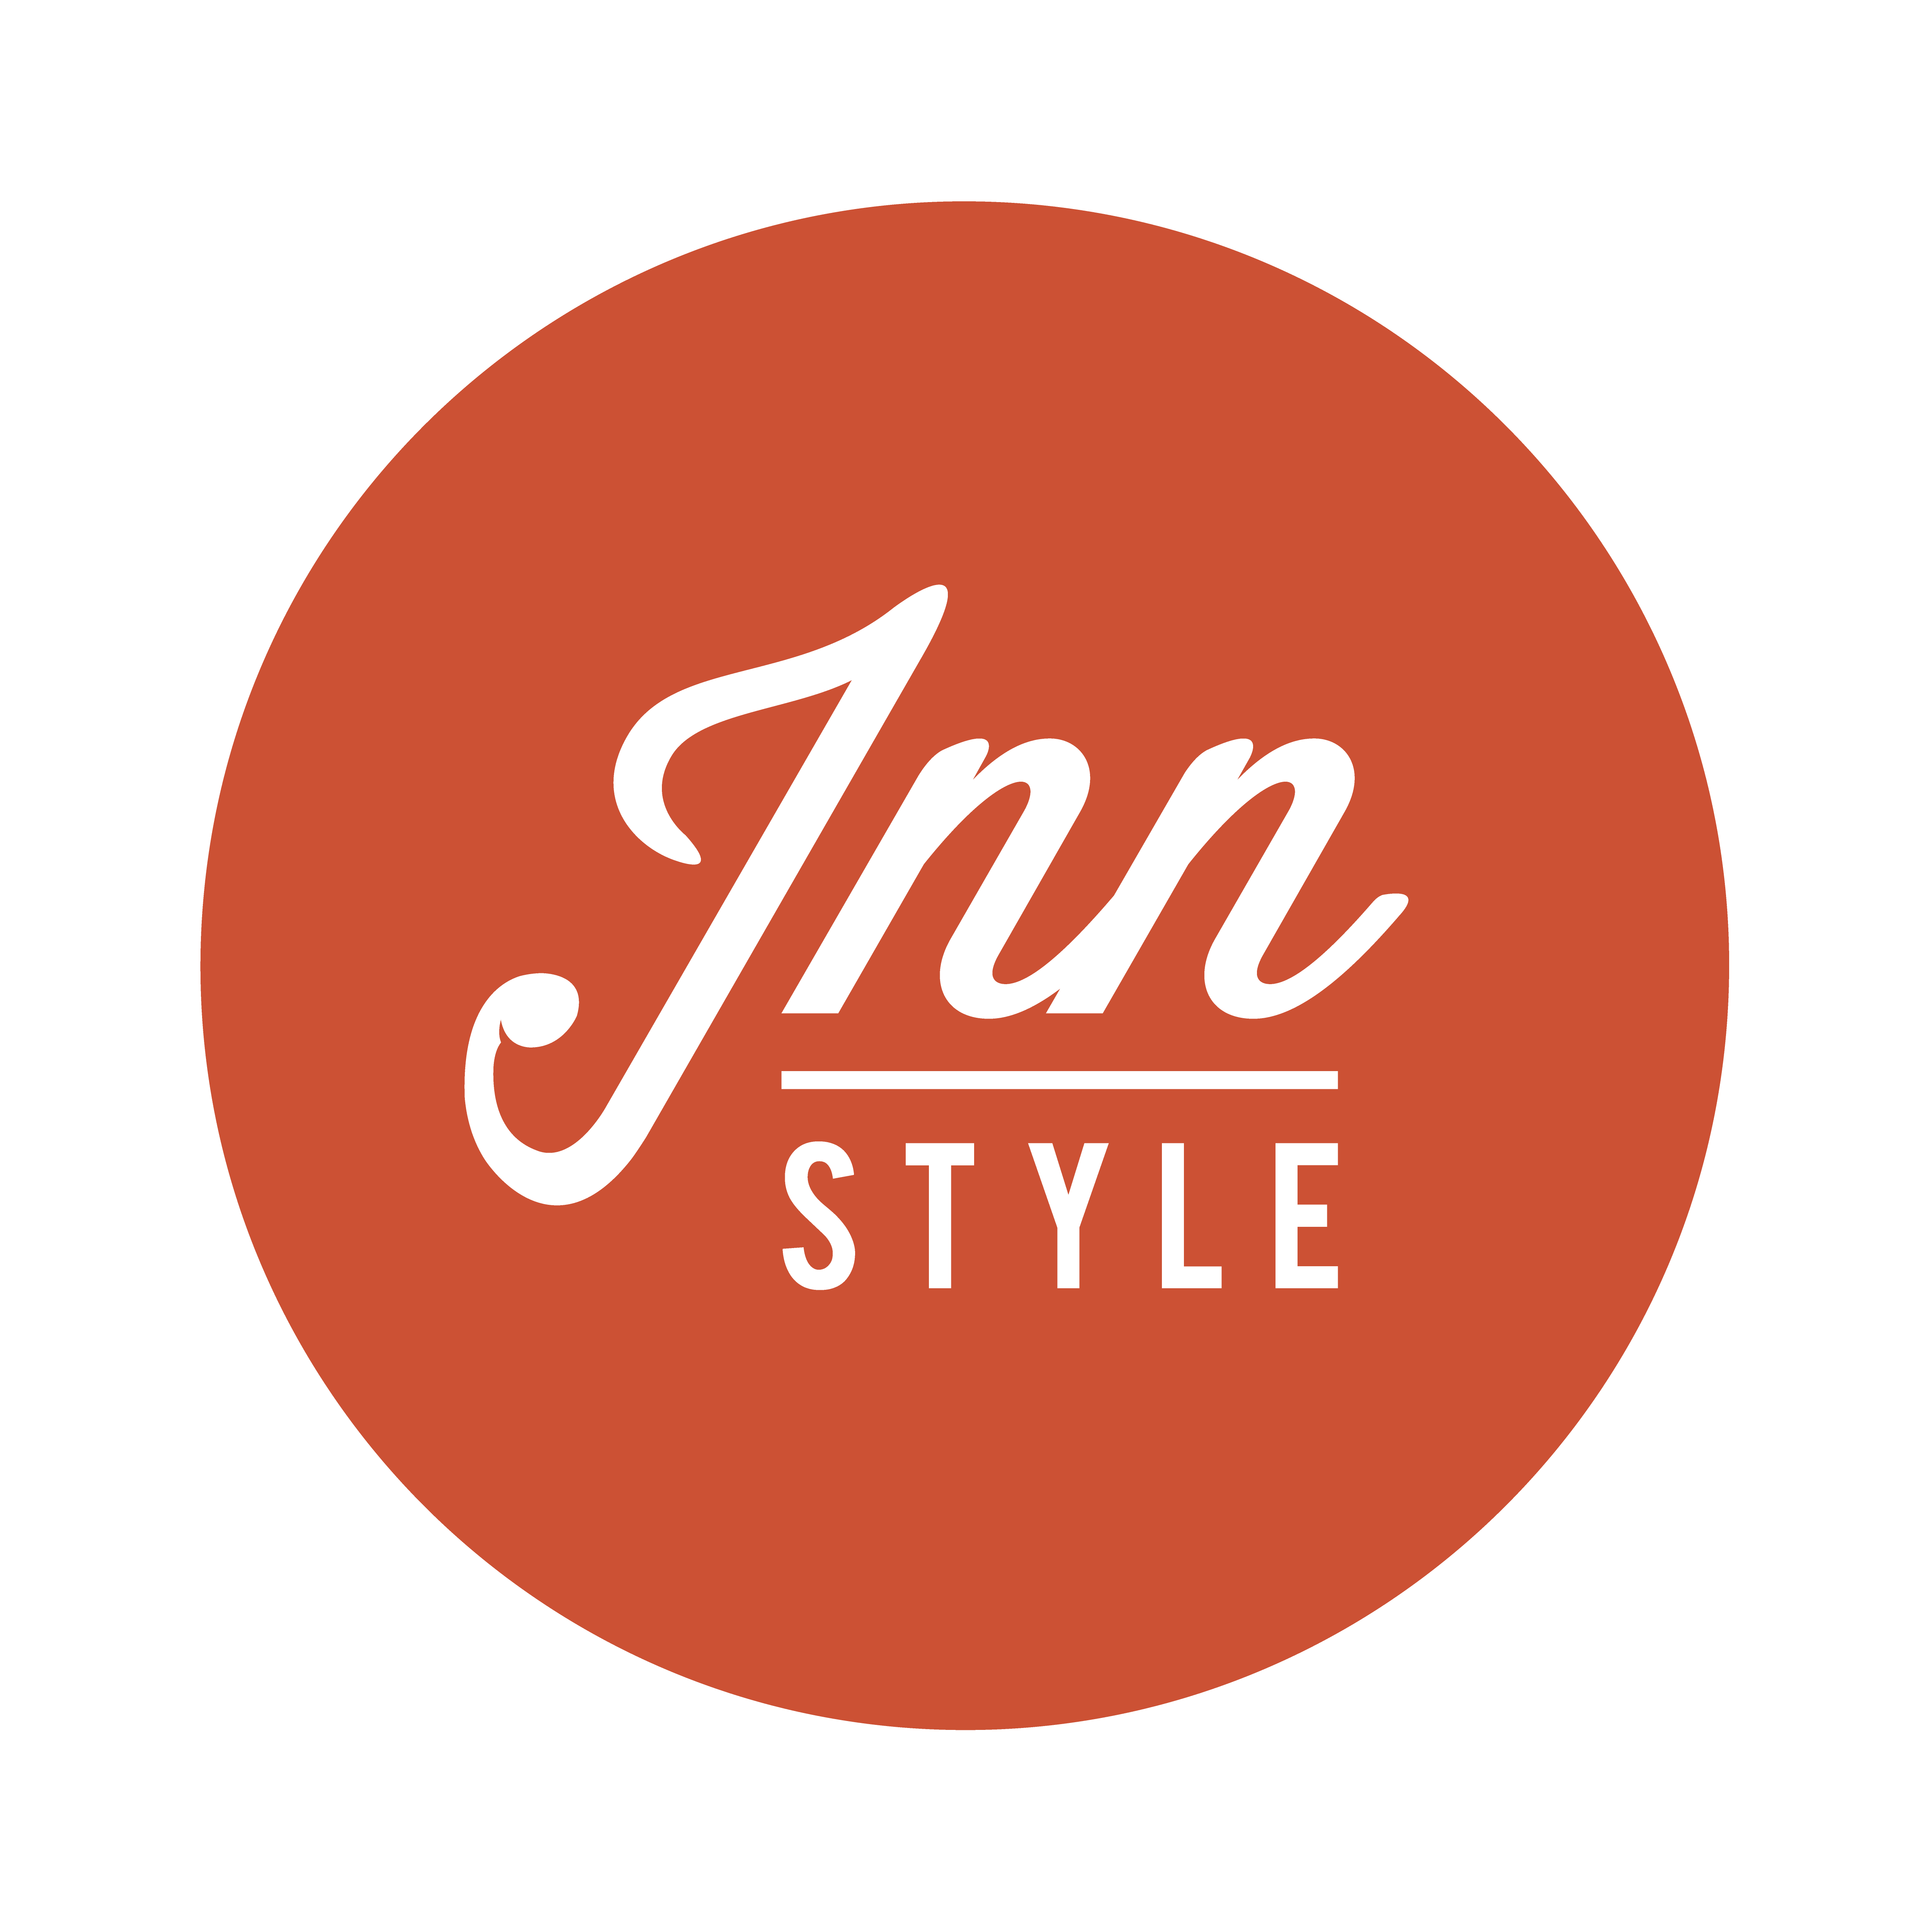 Getting to know Inn Style